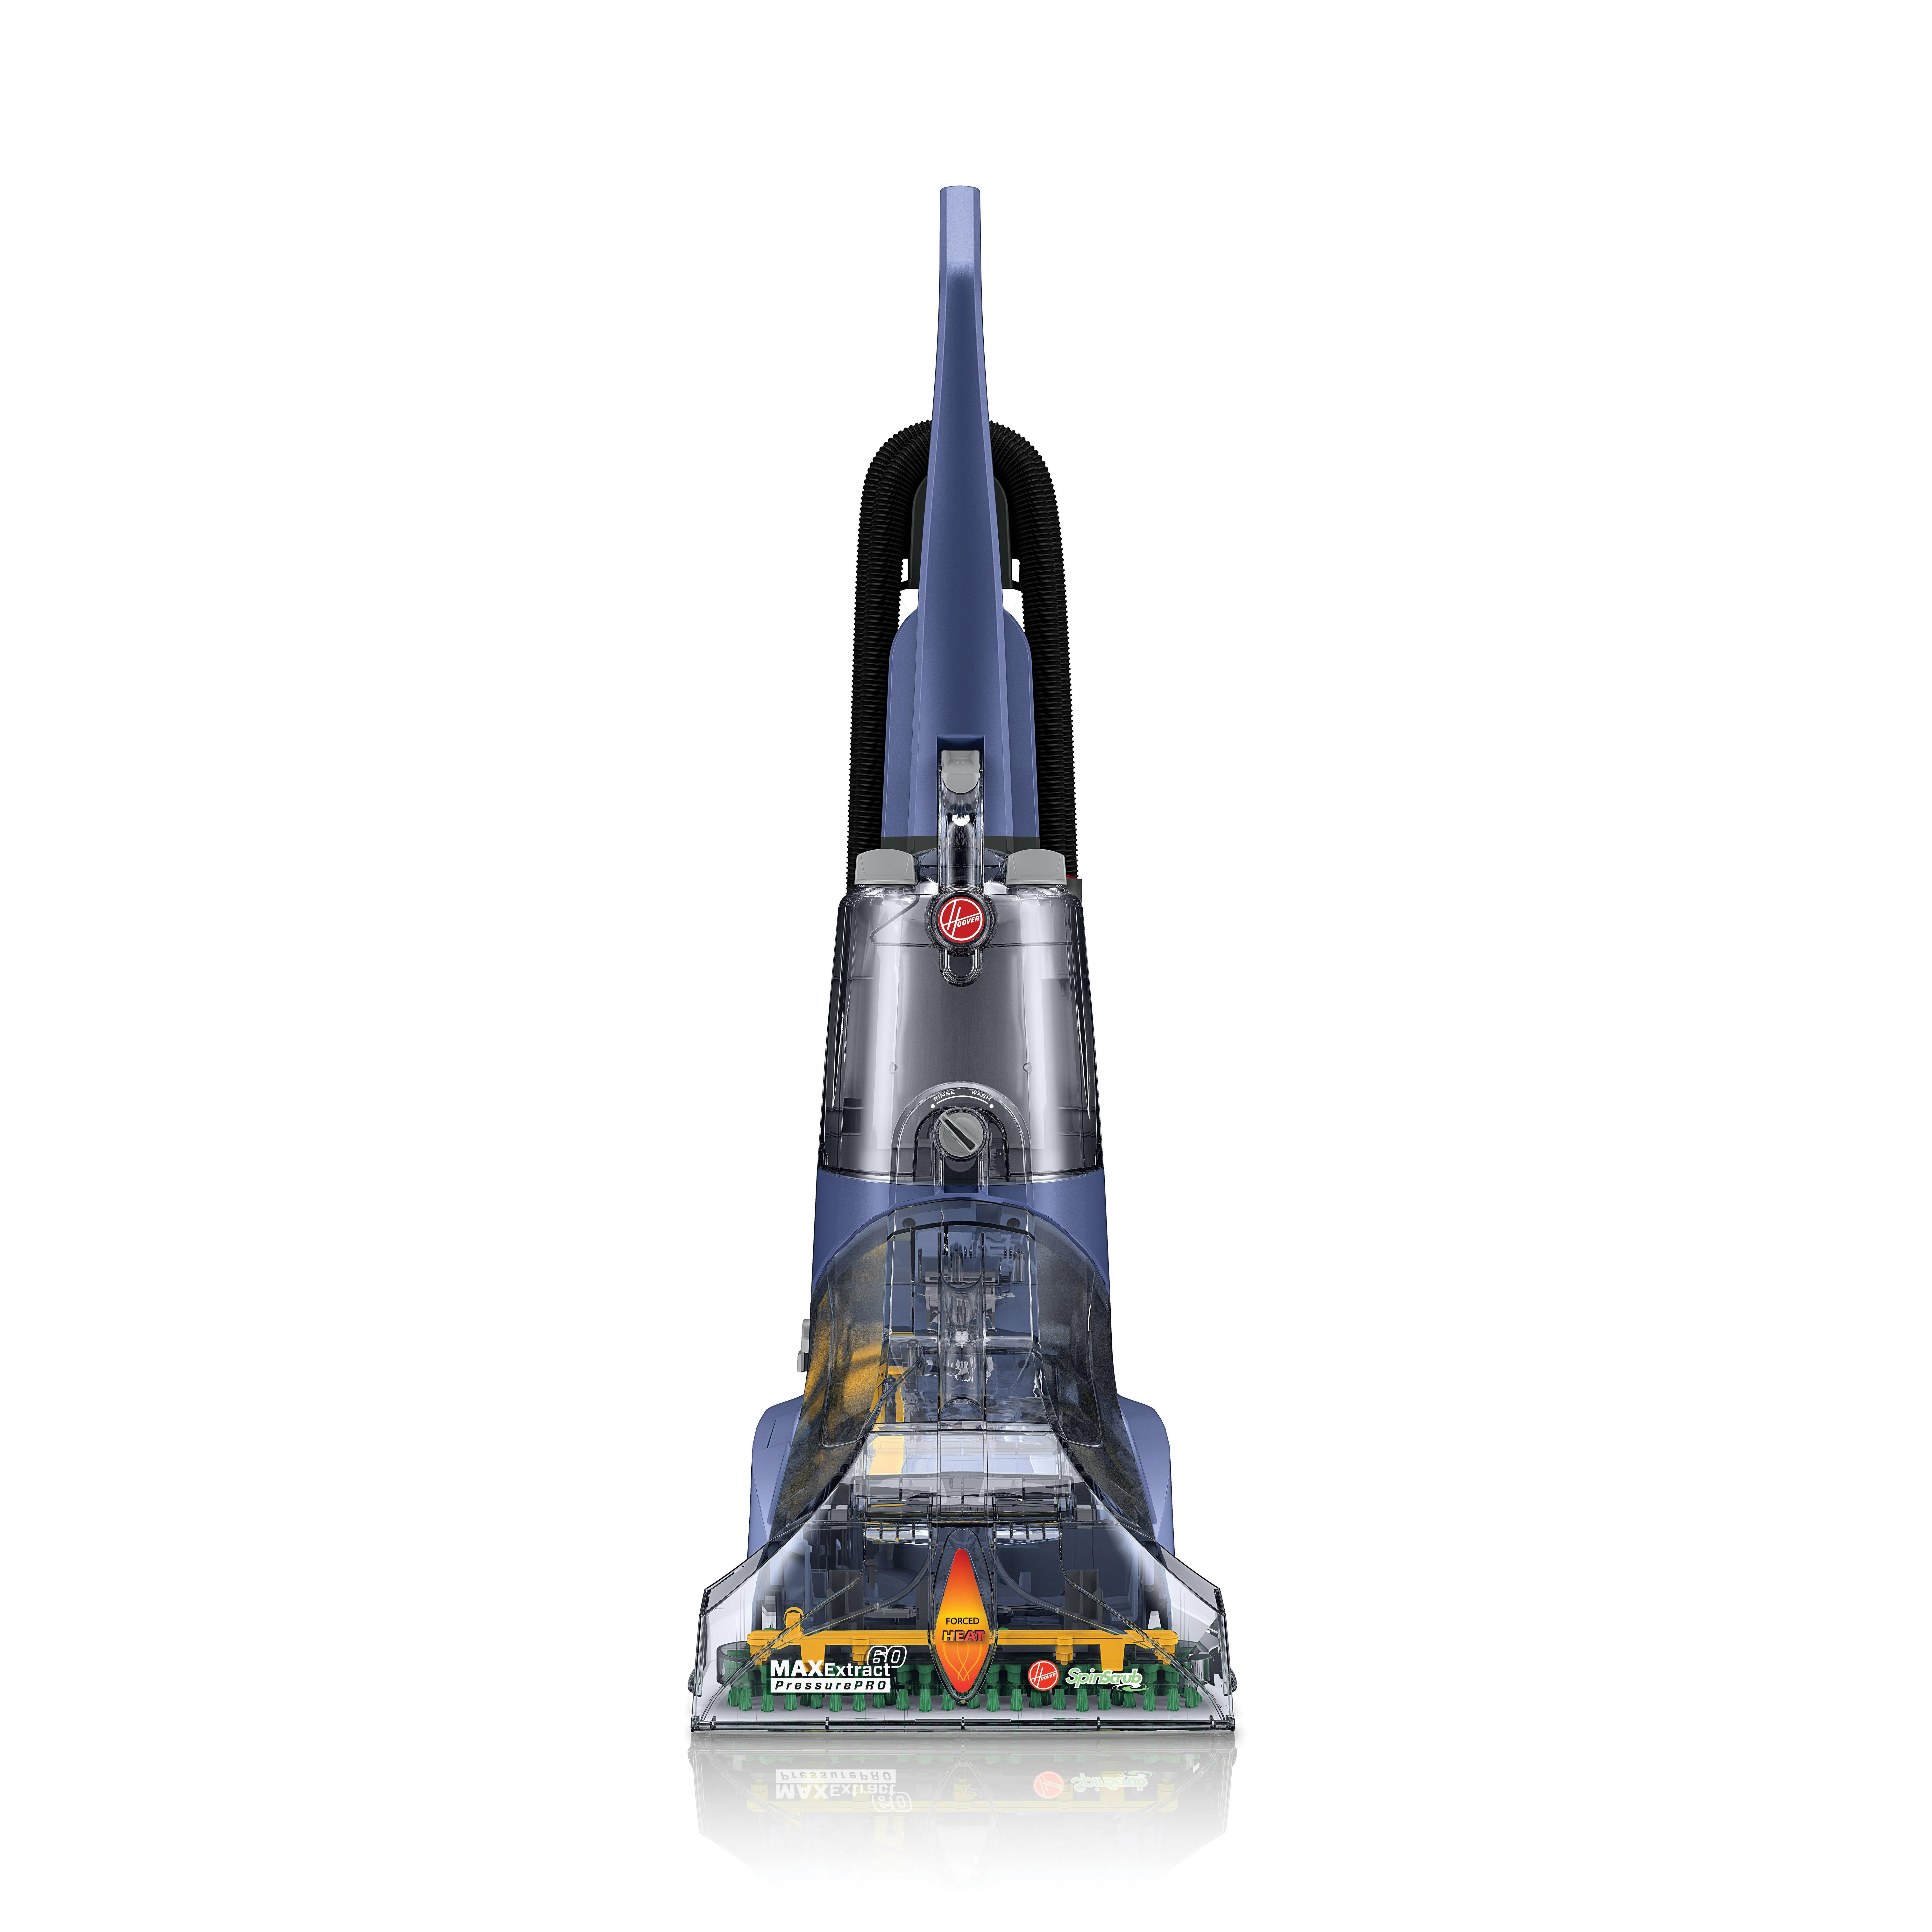 Max Extract 60 Pressure Pro Carpet Cleaner